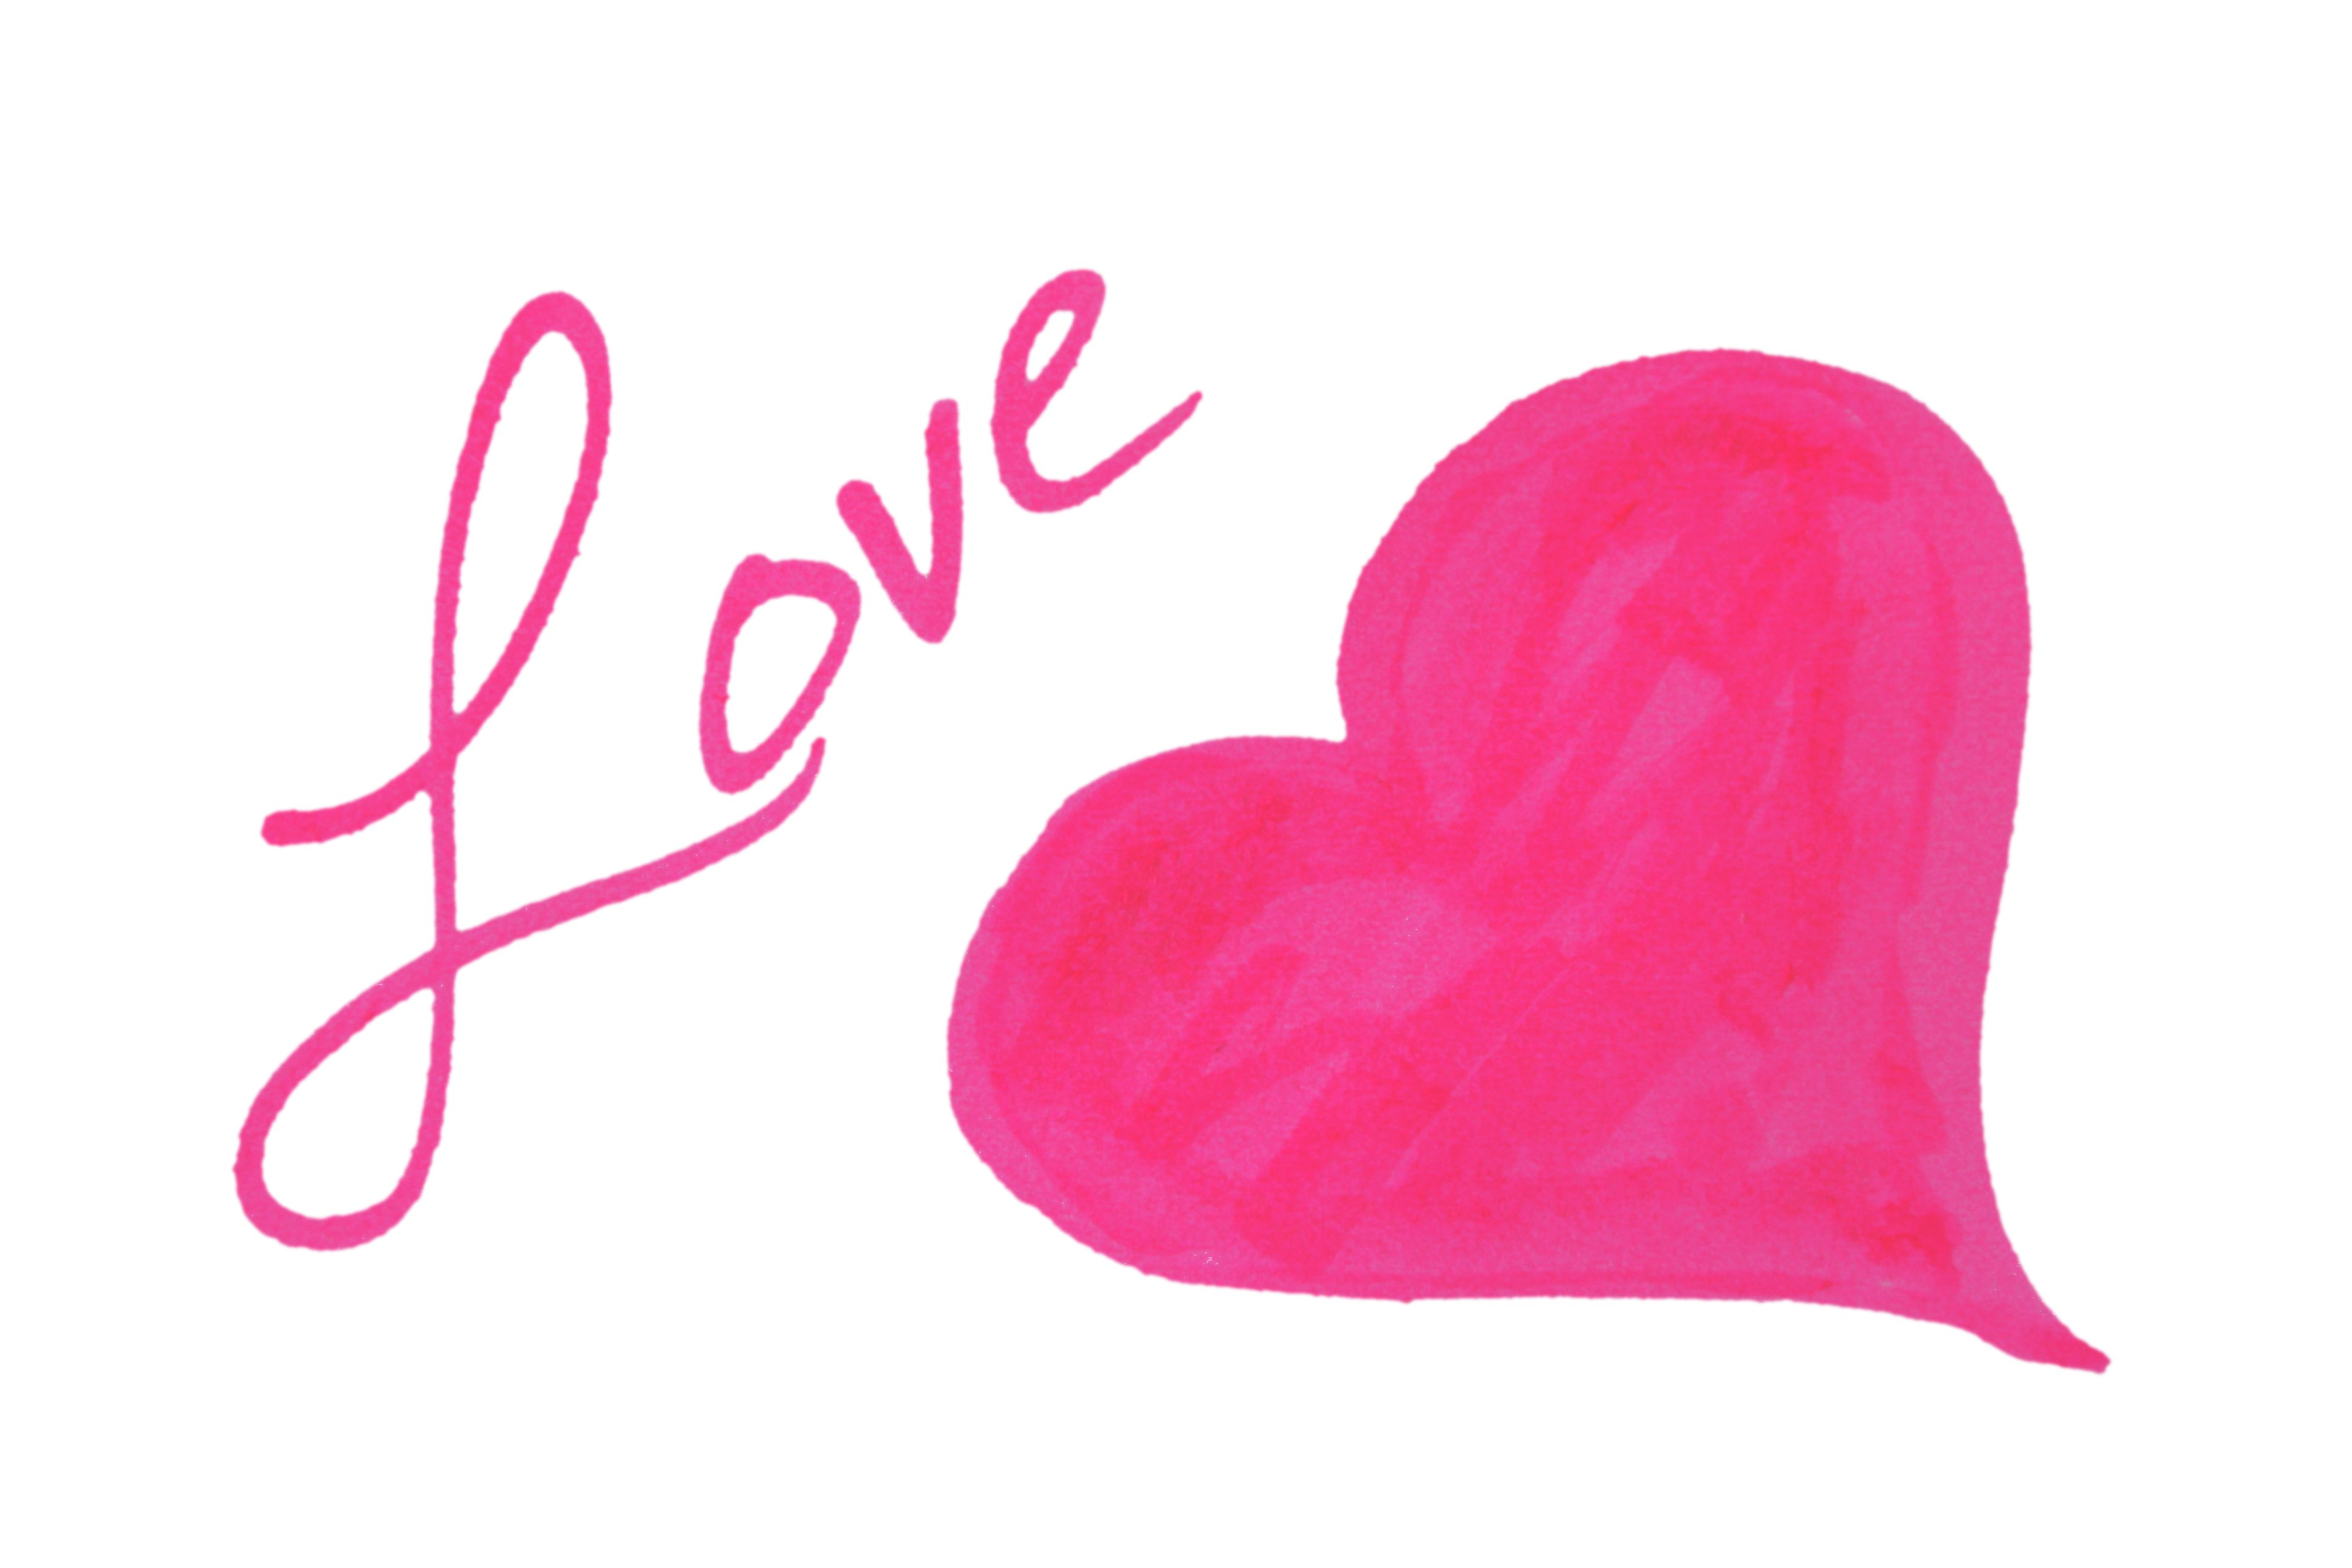 3888x2592 God Love Clipart Free Images 2